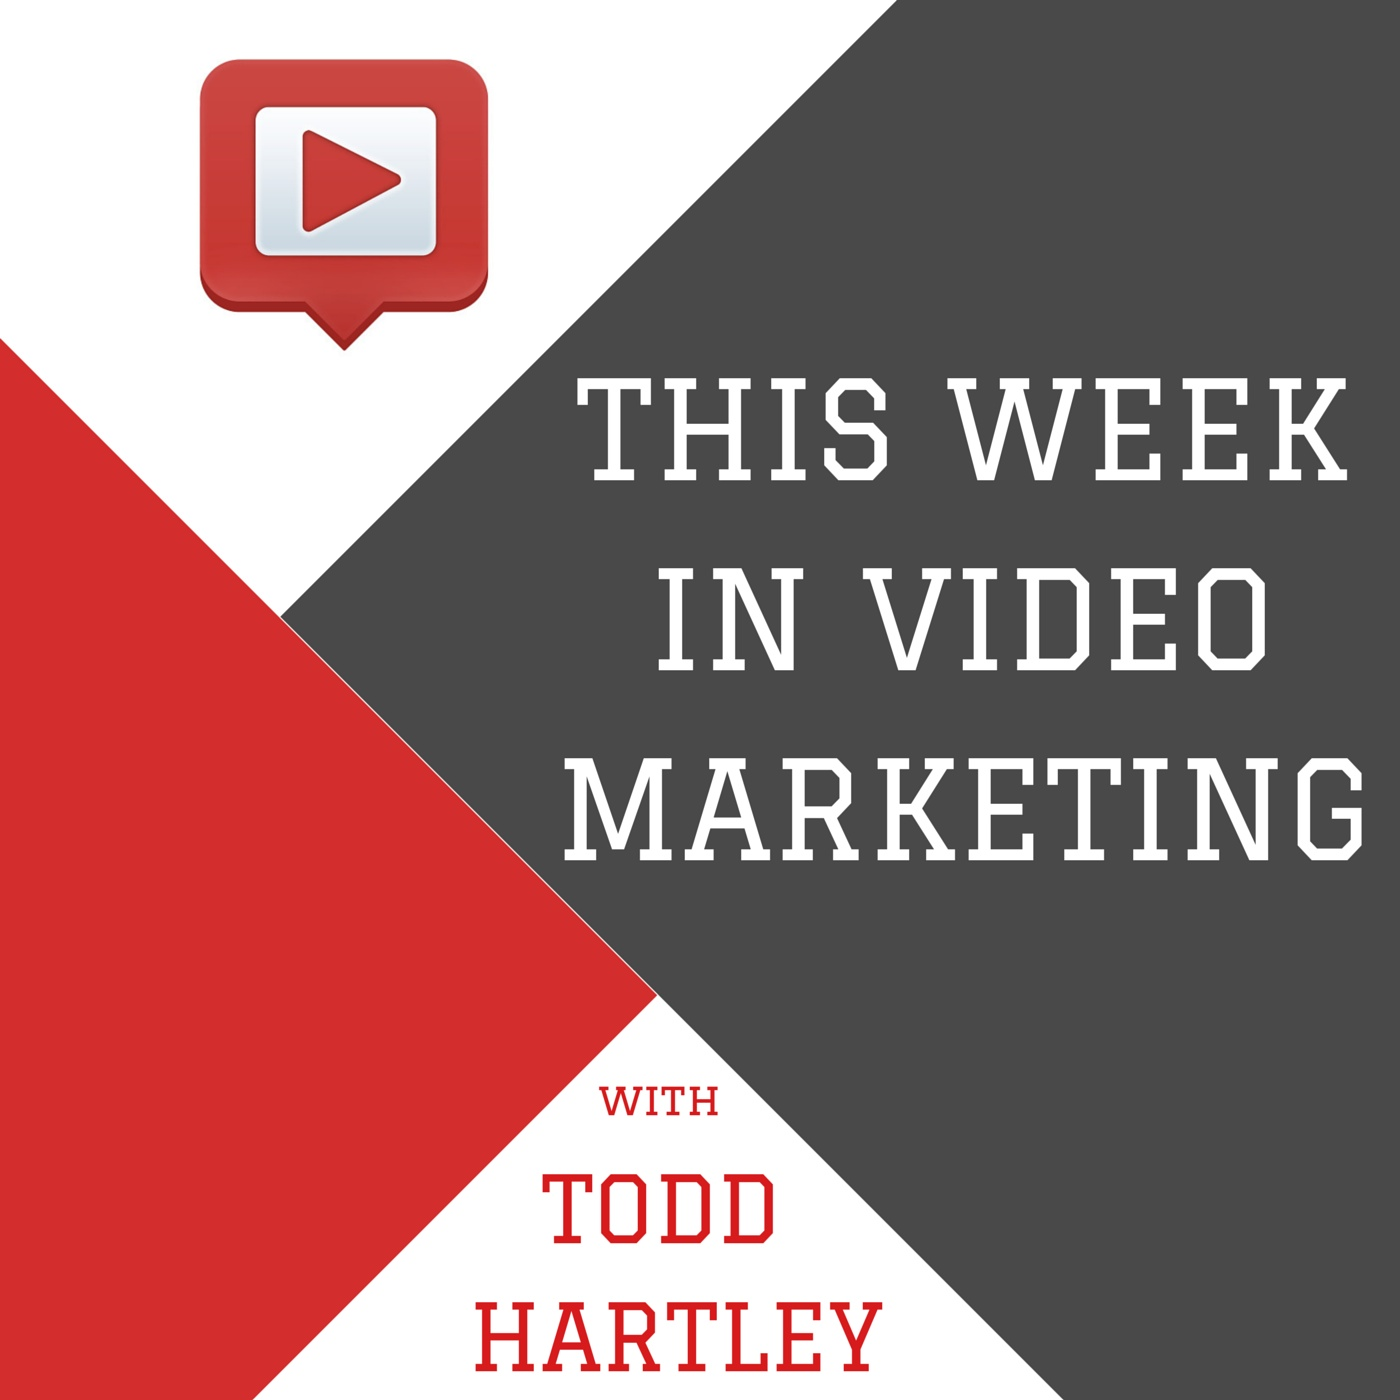 This Week In Video Marketing